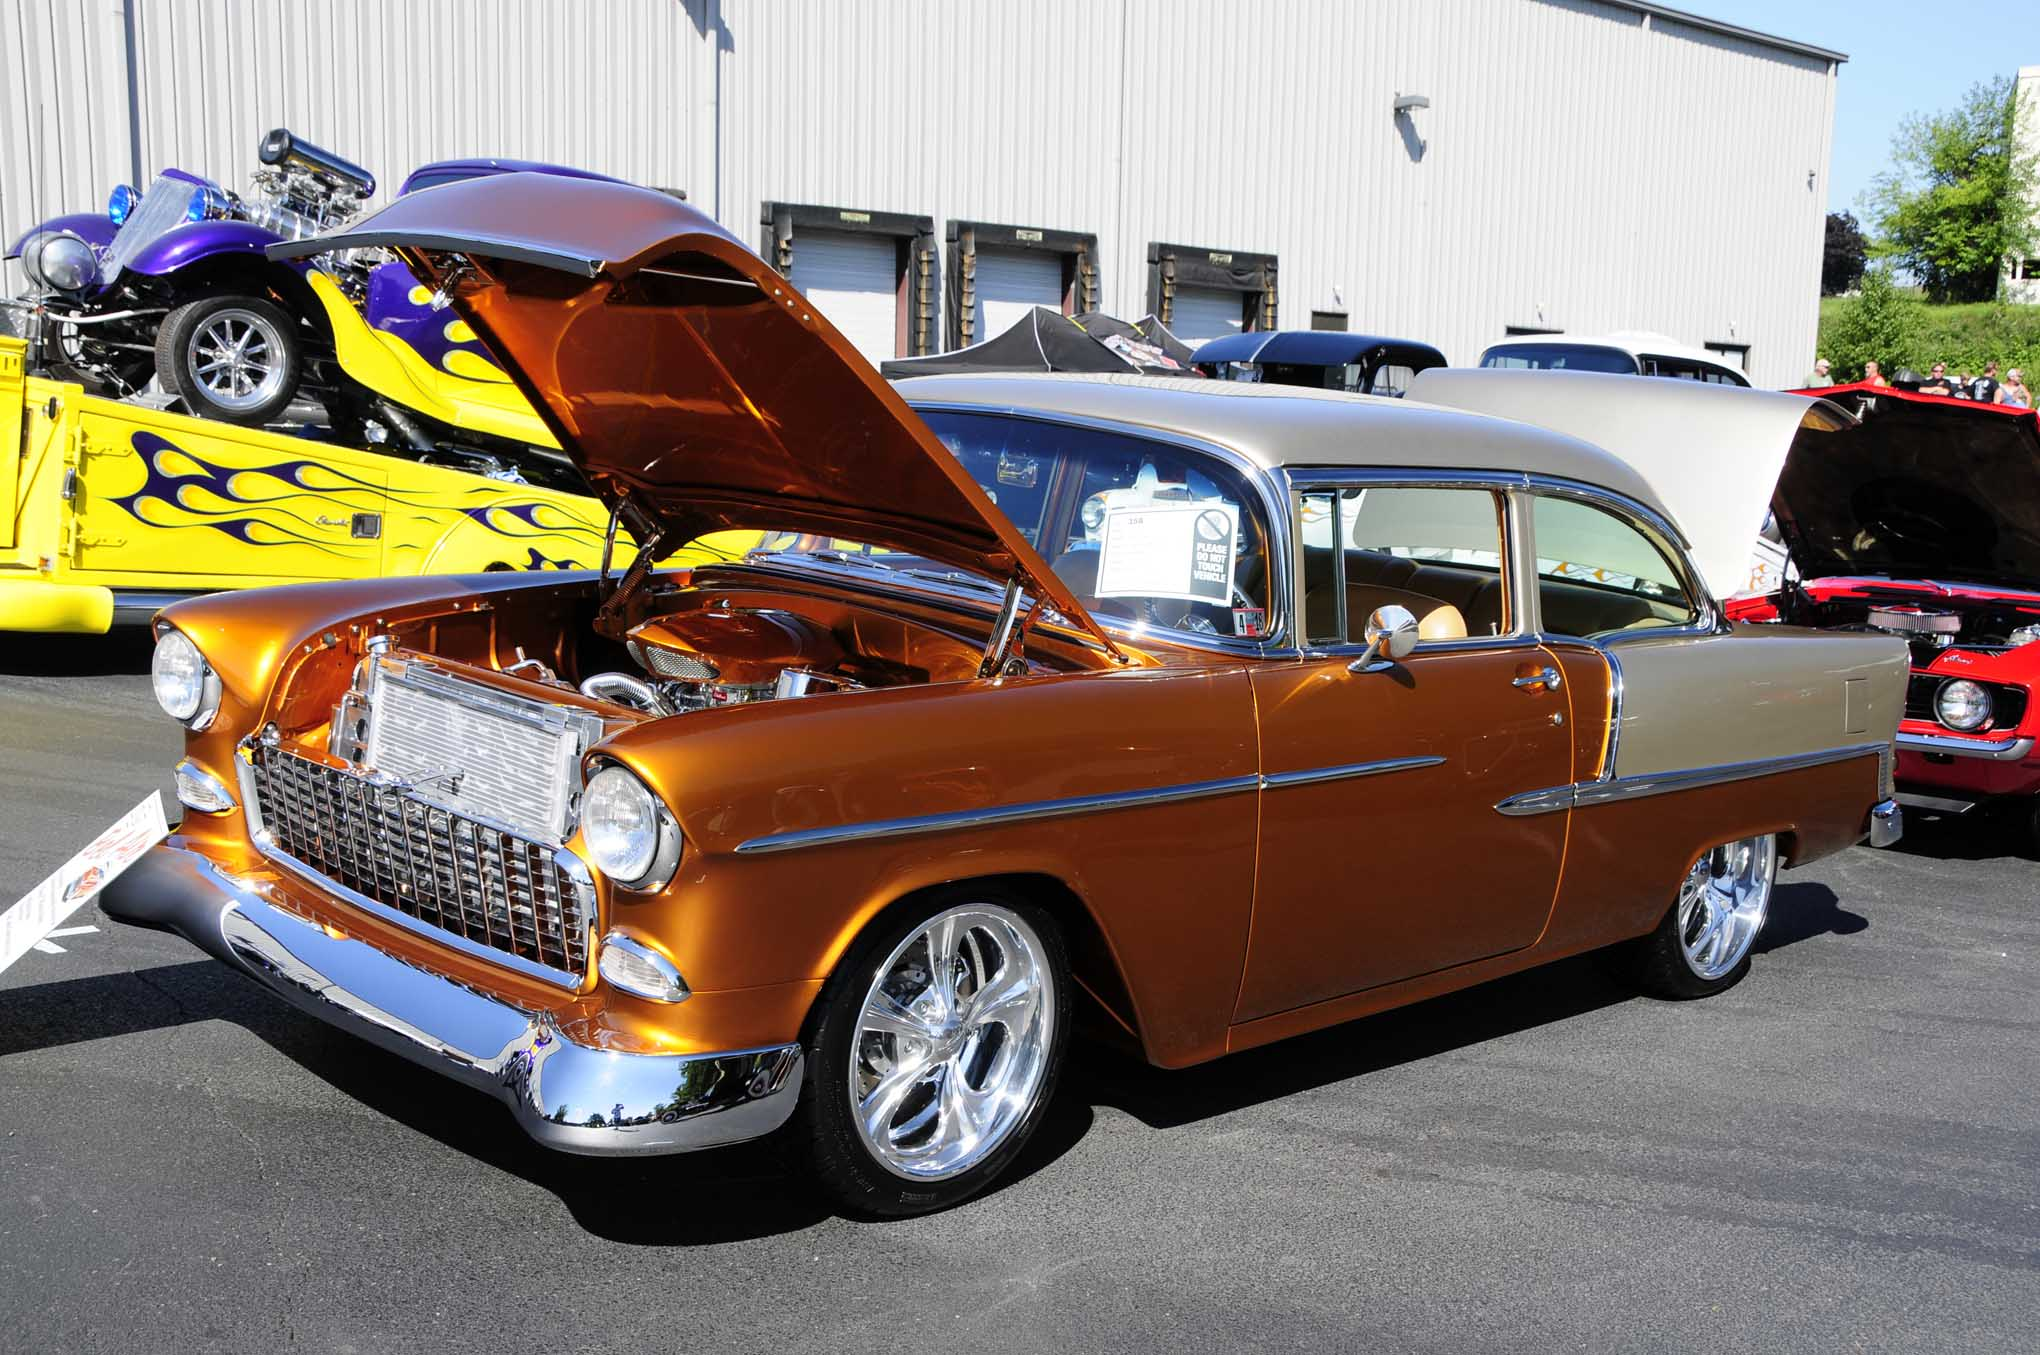 Another recipient of the STREET RODDER Editor's Choice Award went to the 1955 Chevy Bel Air with a carbureted and highly detailed small-block V-8 belonging to Wes Cassel.